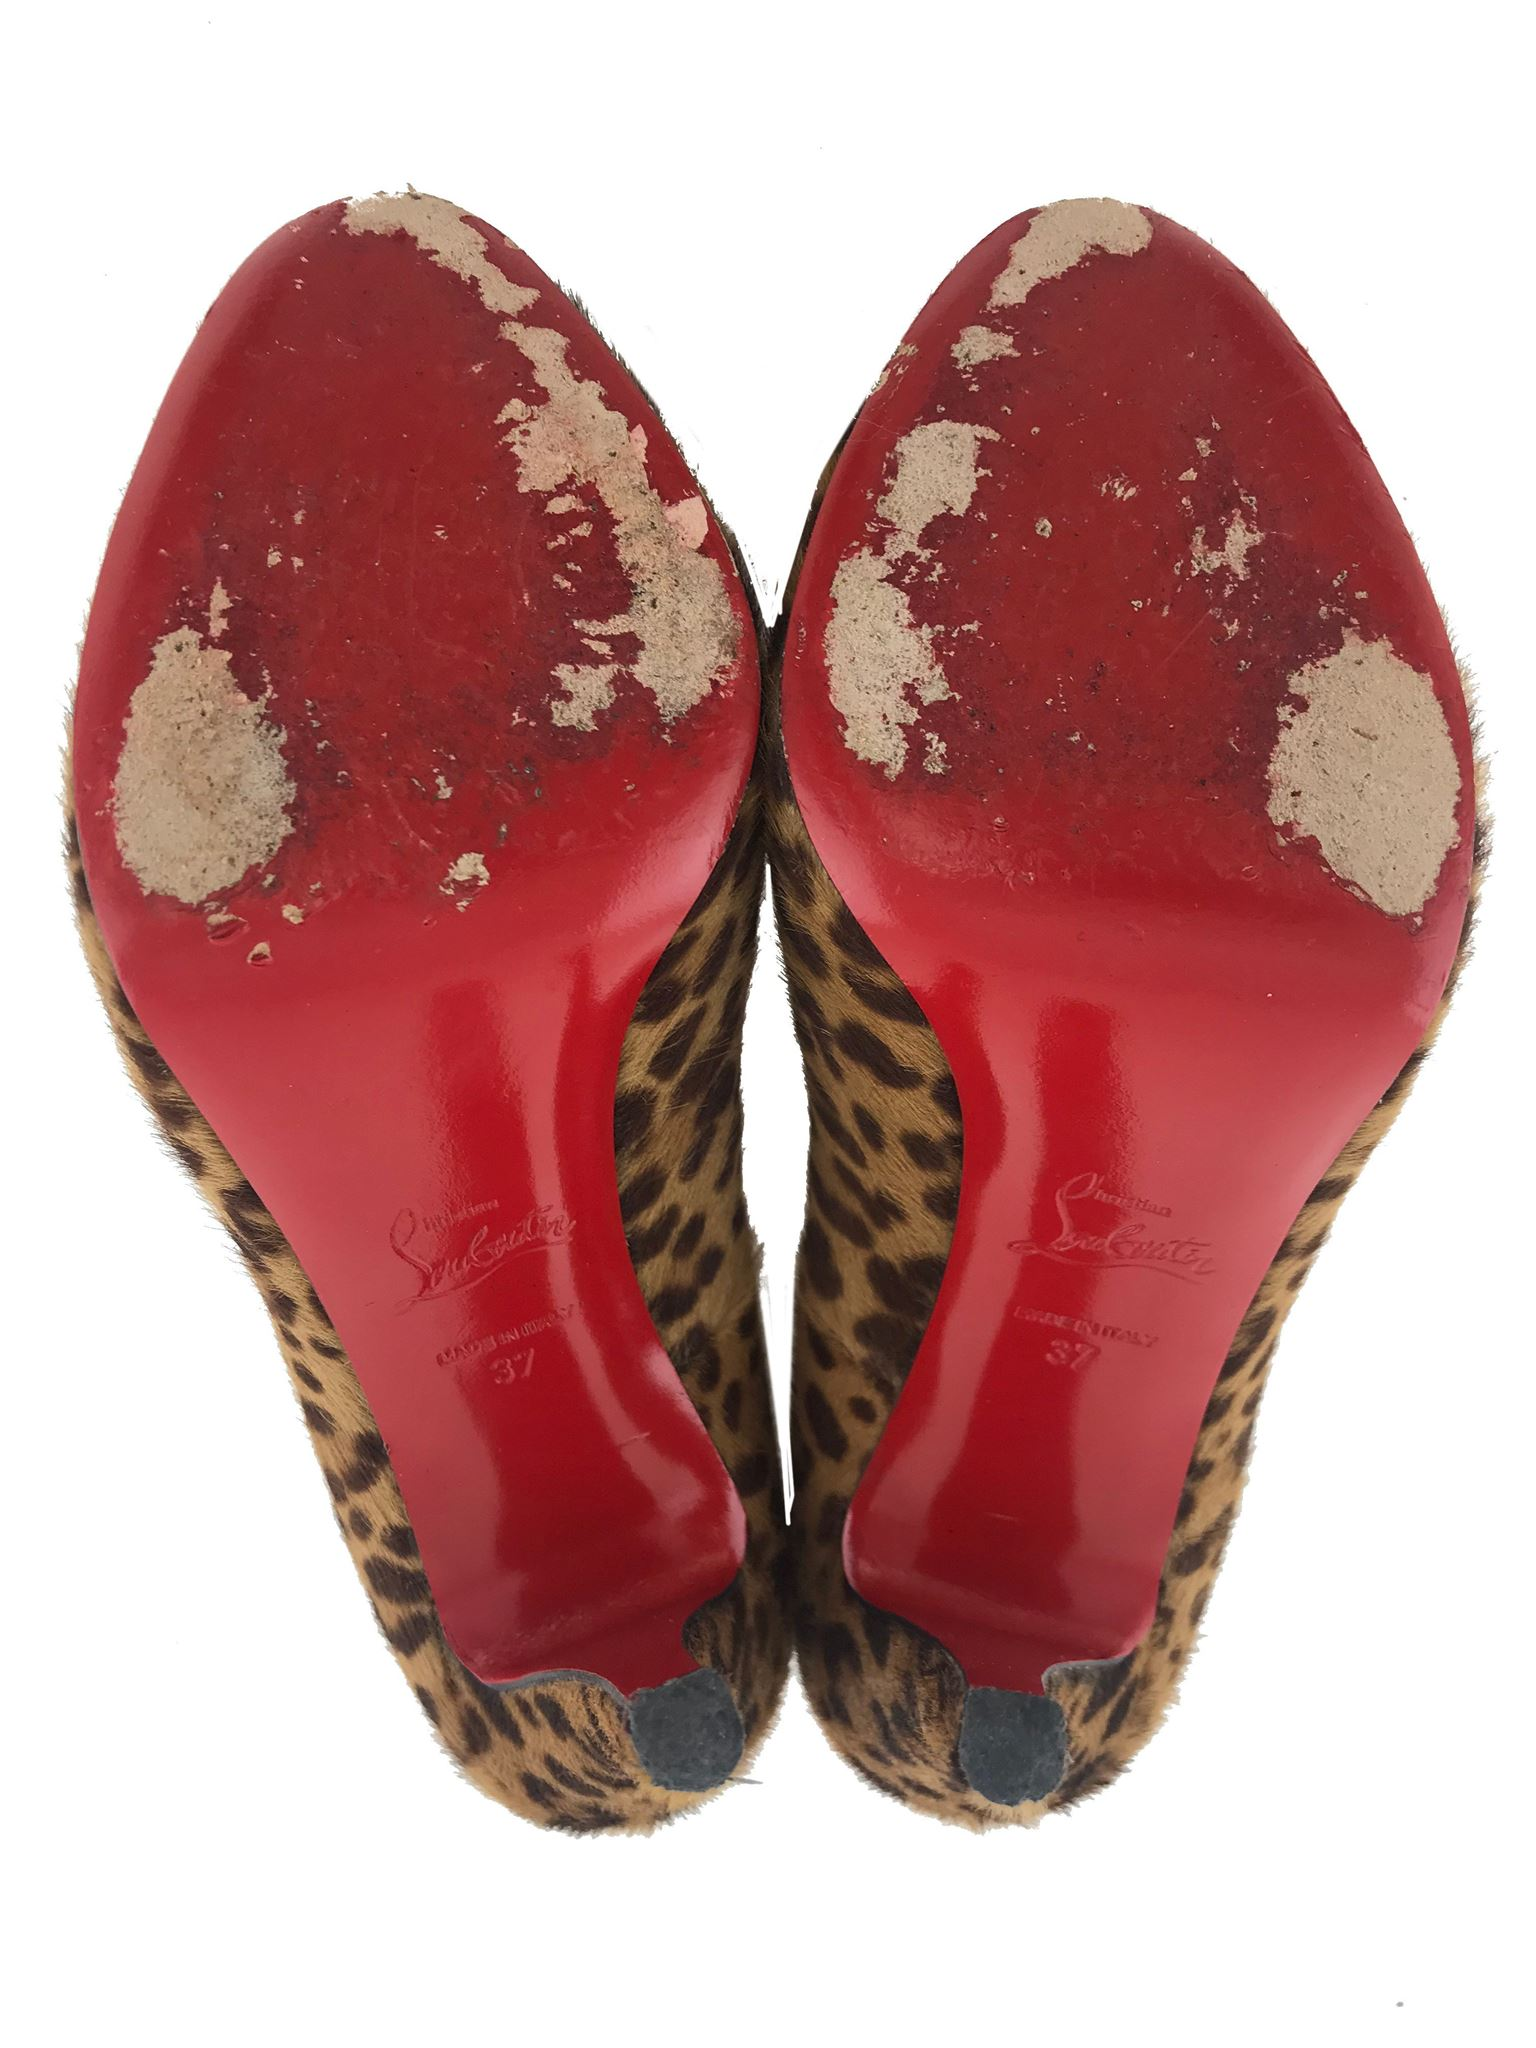 825f3995befc Christian Louboutin Pony Hair Peep Toe Pumps Size 7. Liquid error  Index  was out of range. Must be non-negative and less than the size of the  collection.